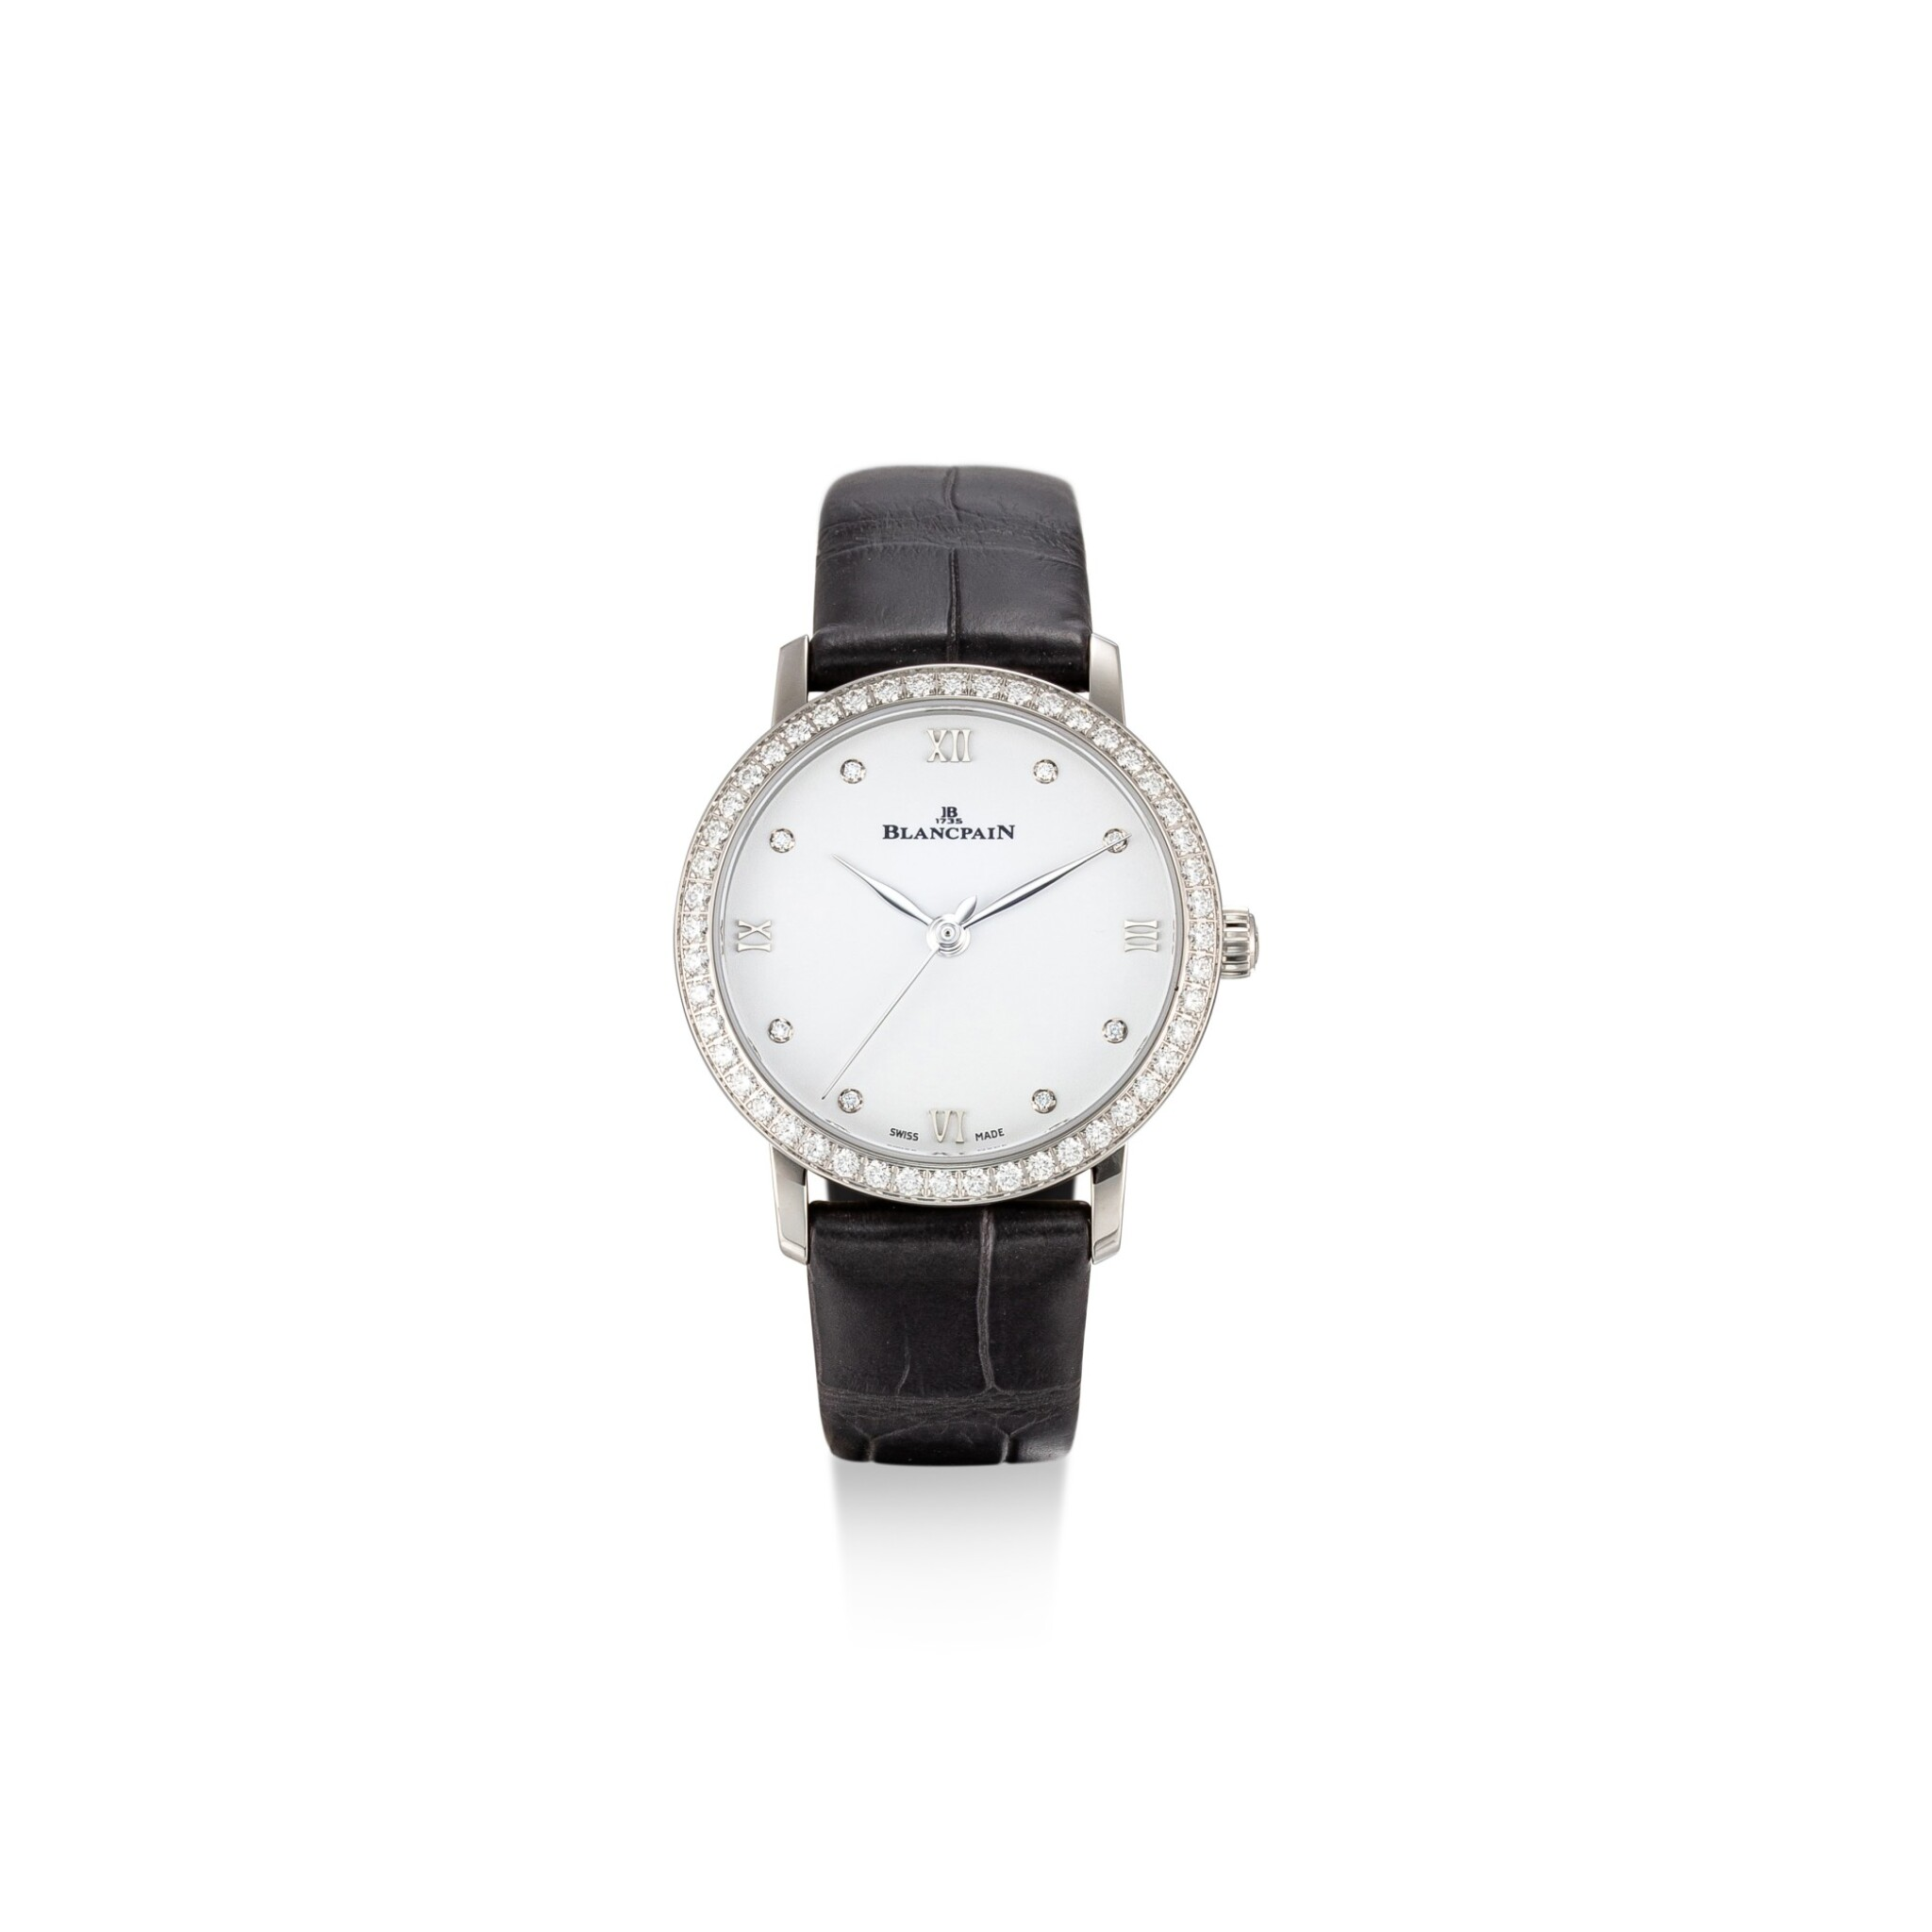 View full screen - View 1 of Lot 105. BLANCPAIN   VILLERET, REFERENCE 6104 4628 55A A STAINLESS STEEL AND DIAMOND-SET WRISTWATCH, CIRCA 2018.